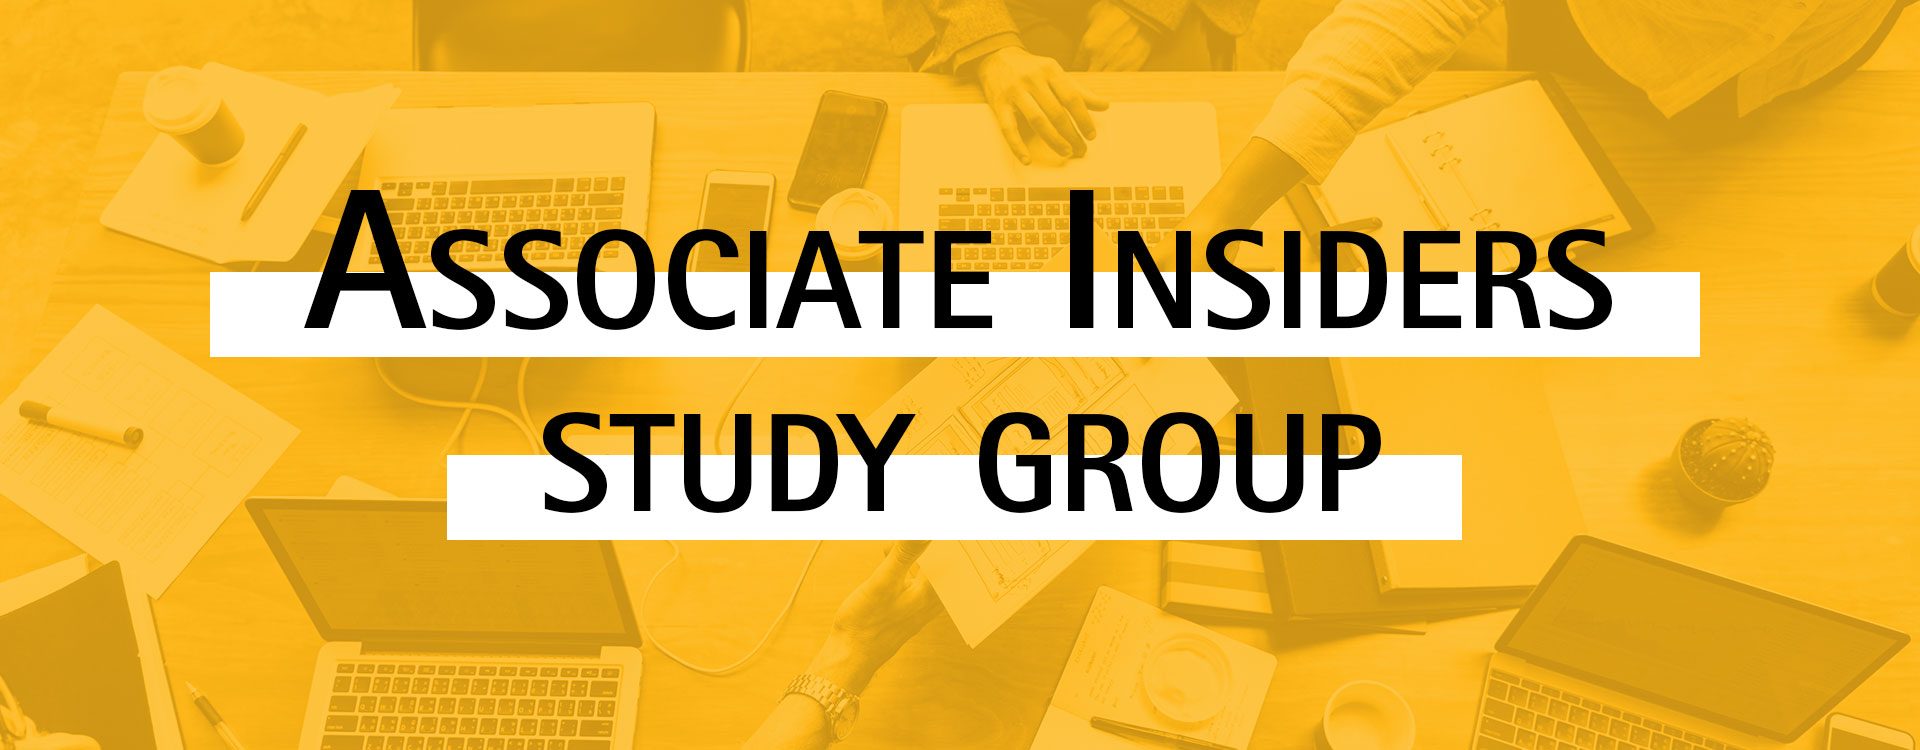 PE-Associate-Insiders-Study-Group-2018-event.jpg